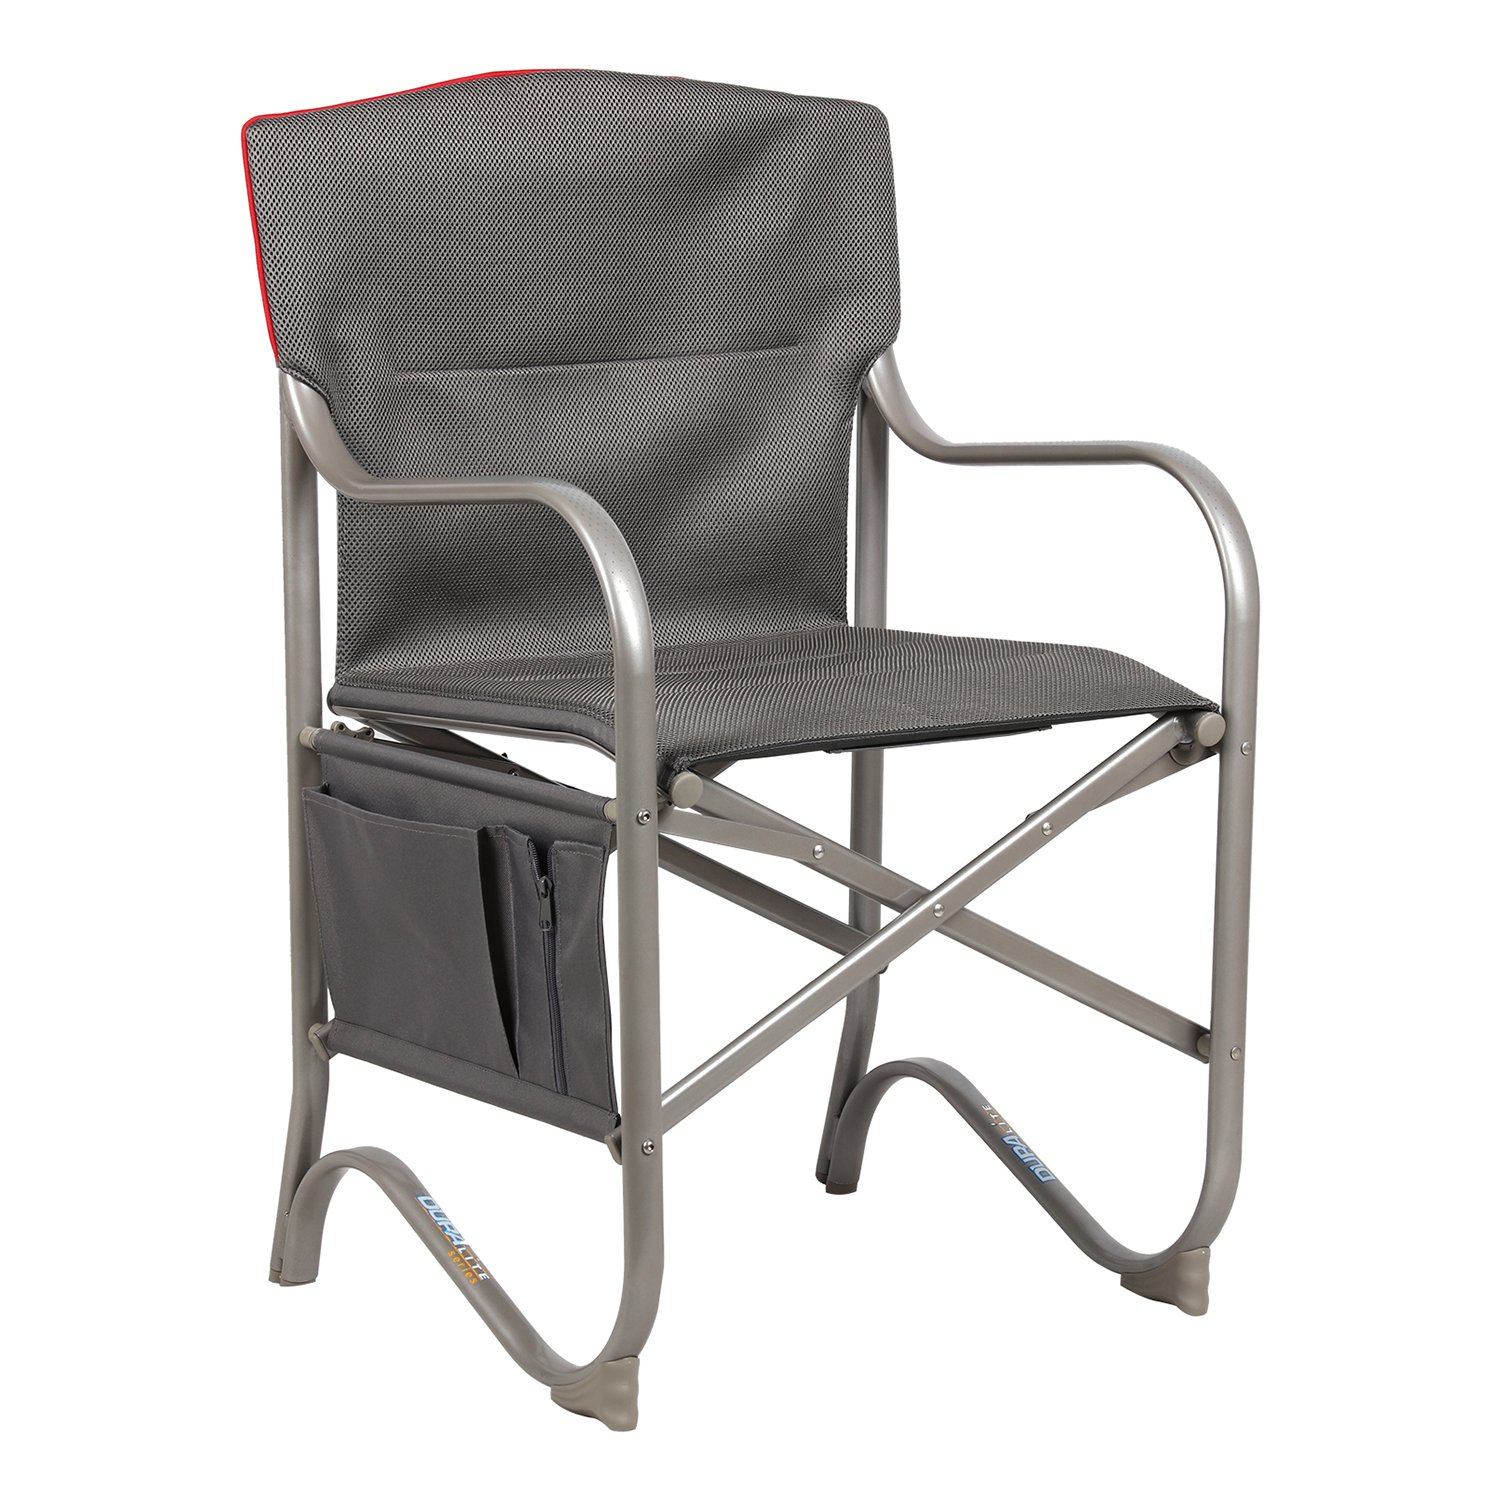 PORTAL Duralite Ultralight Folding Director's Chair Portable Breathable Full Back Camping Sports Chair with Decent Side Pockets Gray by PORTAL